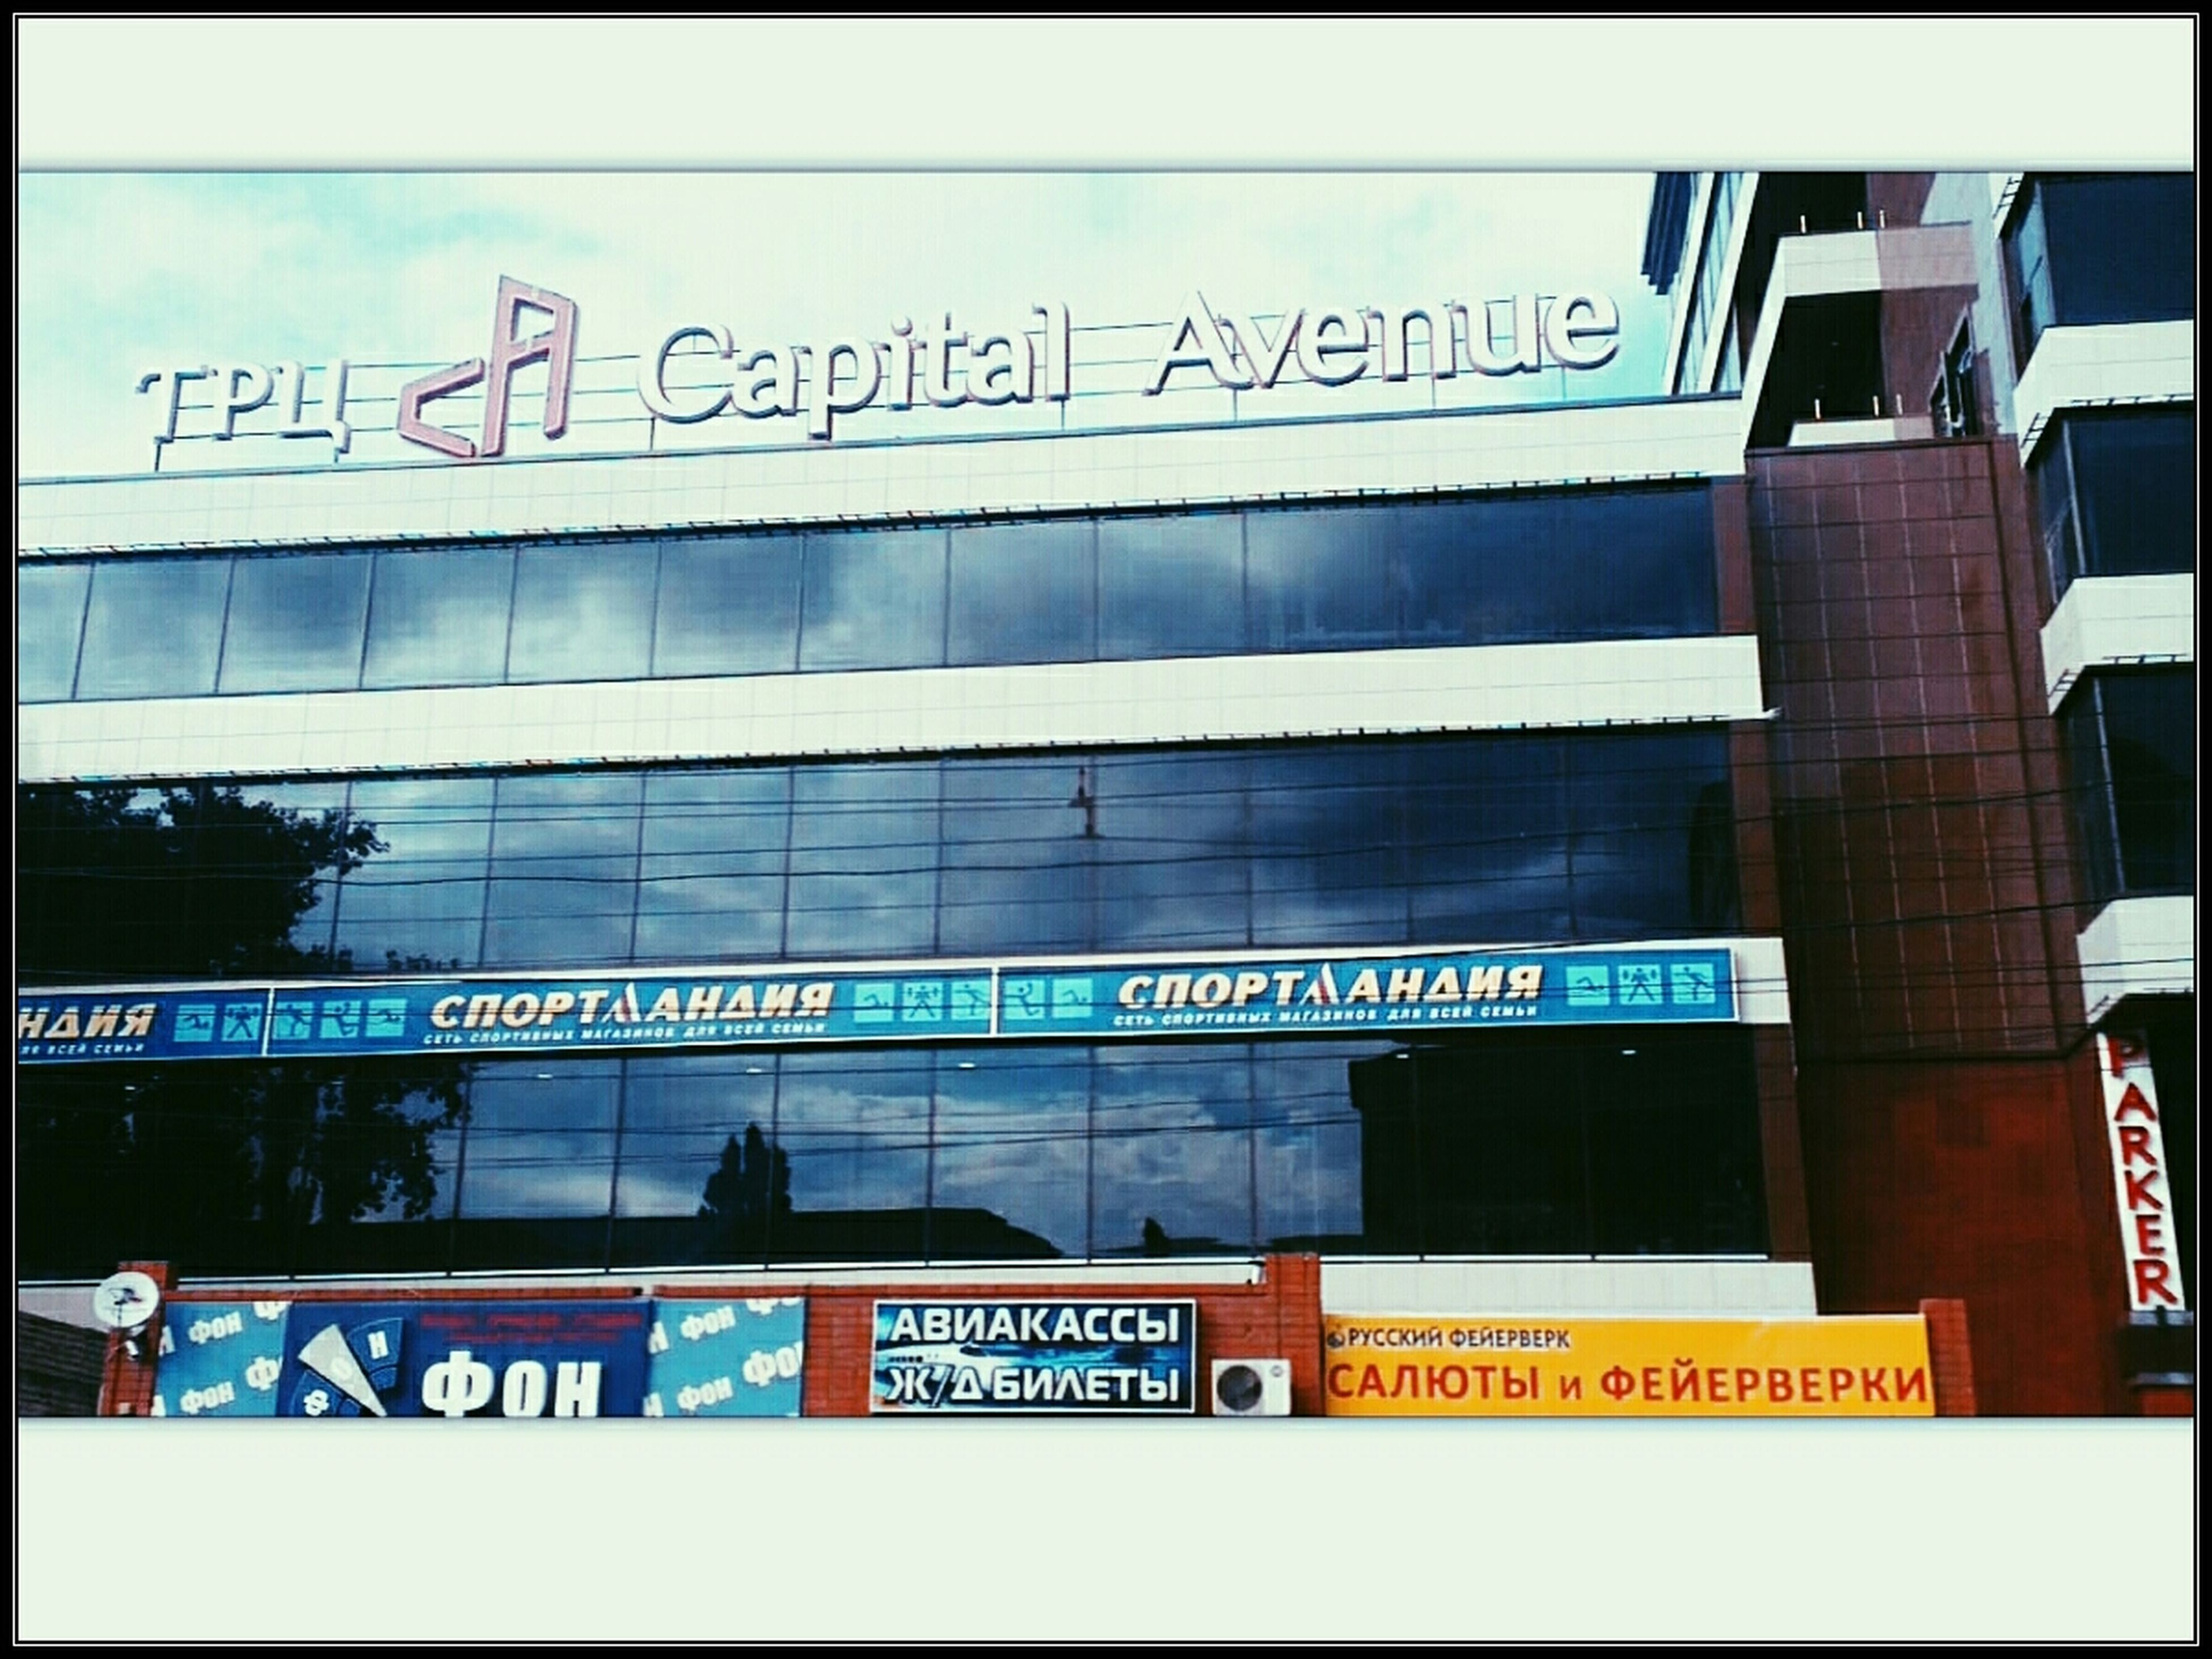 text, western script, communication, information, capital letter, non-western script, information sign, transfer print, sign, built structure, auto post production filter, architecture, guidance, building exterior, arrow symbol, low angle view, city, directional sign, commercial sign, advertisement